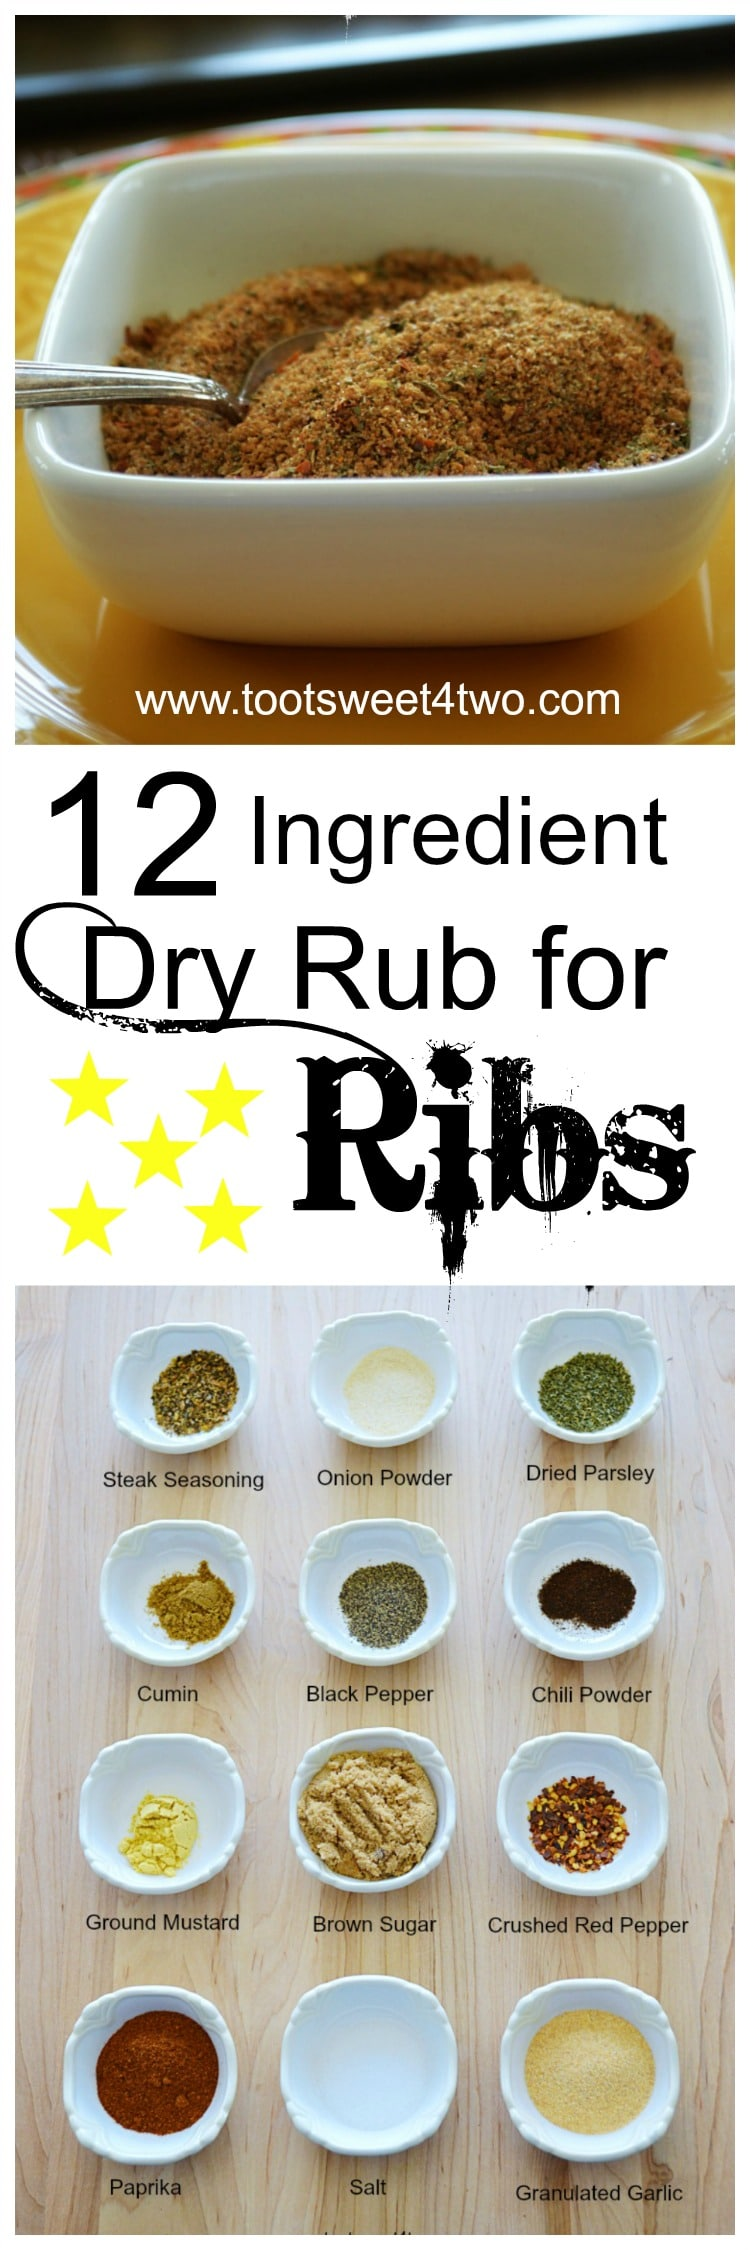 Dry rub for ribs is an easy way to add another layer of flavor to your summer grilling. And why run out and buy a special dry rub mix at the grocery store when you probably already have all the ingredients in your pantry and spice cabinet? Lots of spices and brown sugar join forces to make a sweet and savory homemade DIY dry rub for port ribs that takes only minutes. With just 12 ingredients from your pantry, this easy, garlic infused dry rub recipe is sure to become your favorite BBQ seasoning for baby back pork ribs. A dry rub recipe to beat all dry rubs and you made it yourself! | www.tootsweet4two.com